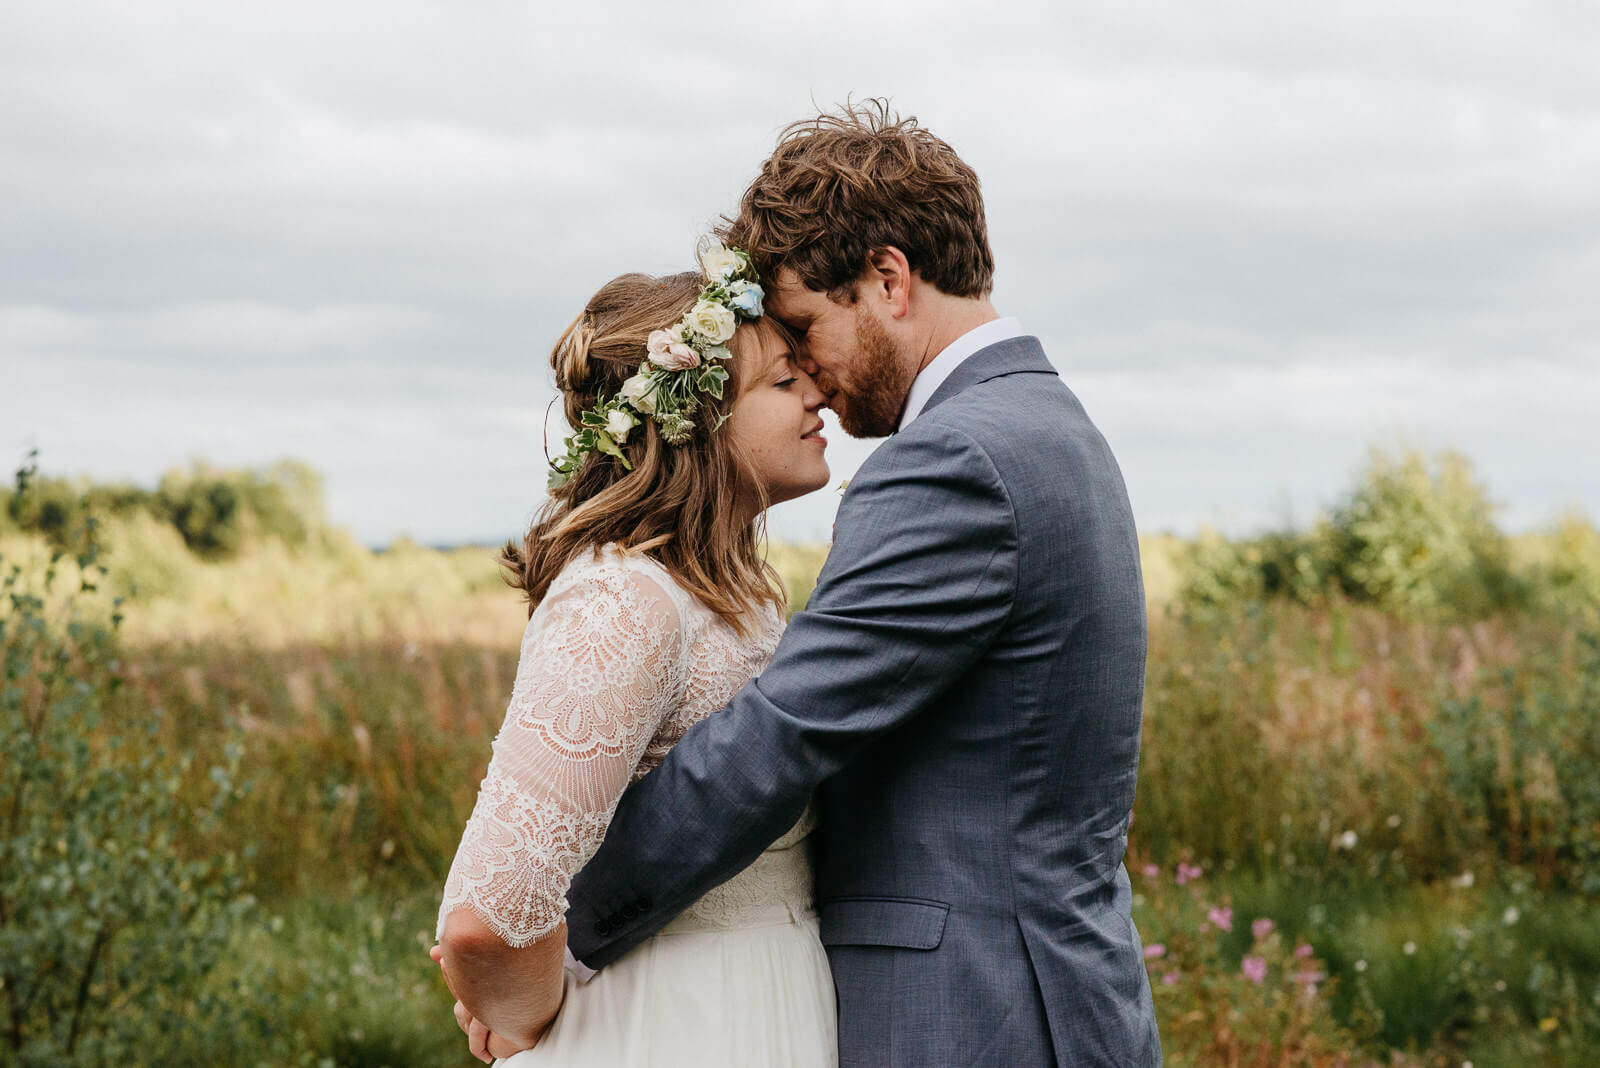 Bride and groom in a tender embrace during their portraits on the edge of the Fenn's, Whixall and Bettisfield Mosses National Nature Reserve